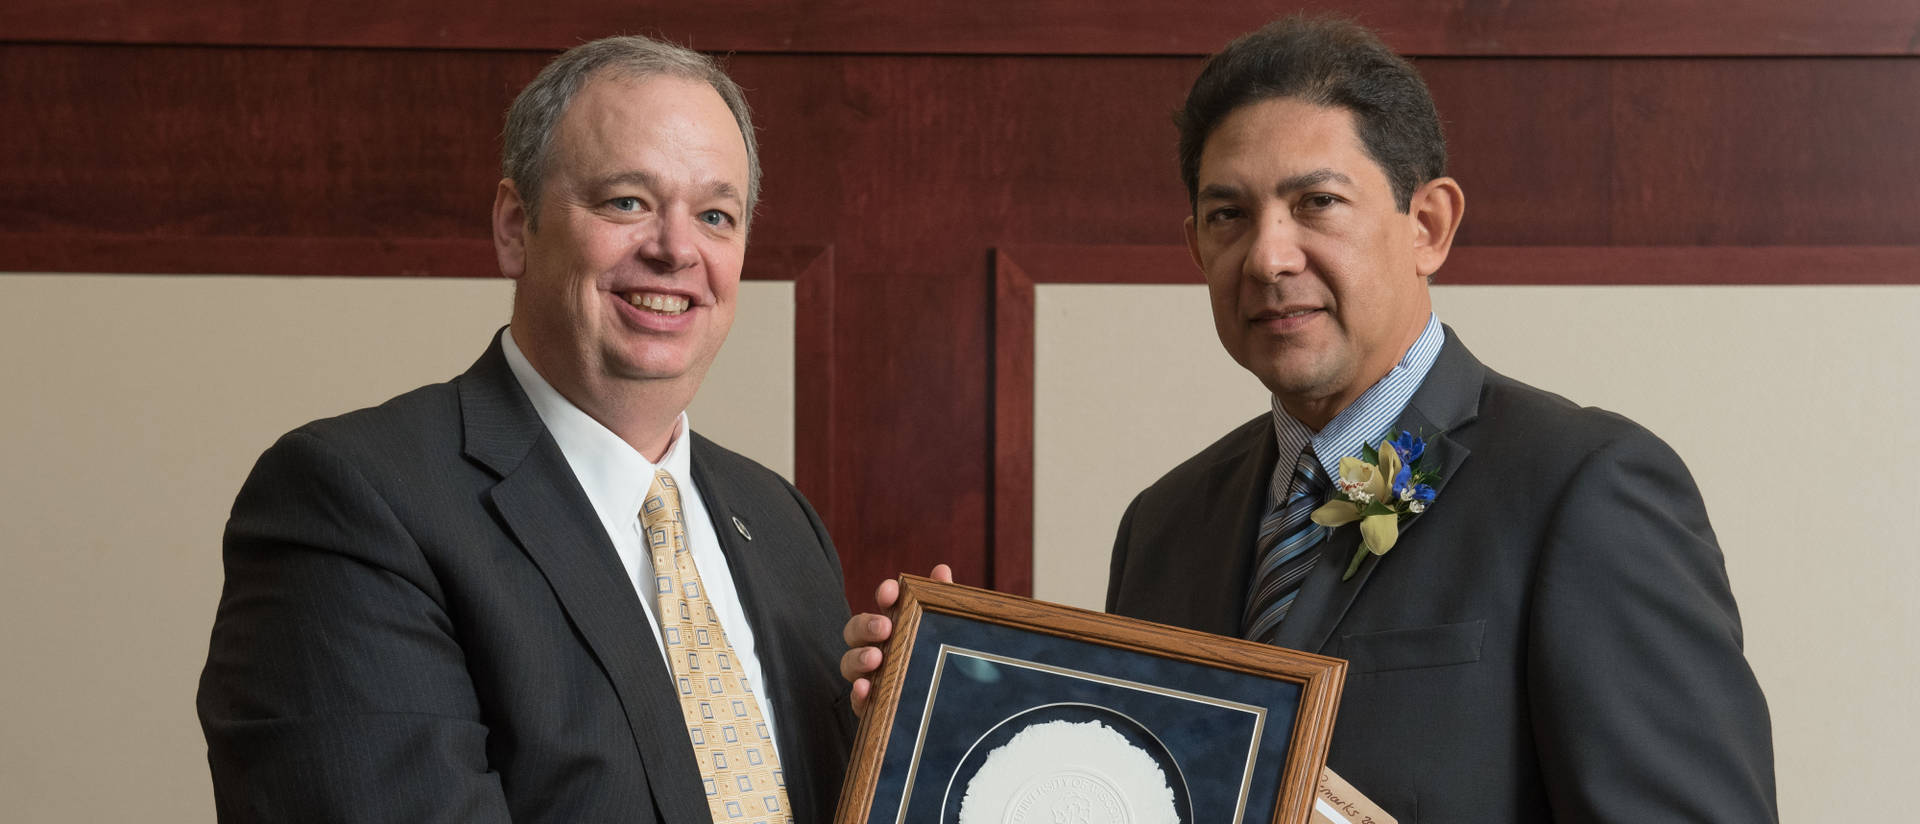 Chancellor Jim hands Alumni Award to recipient.